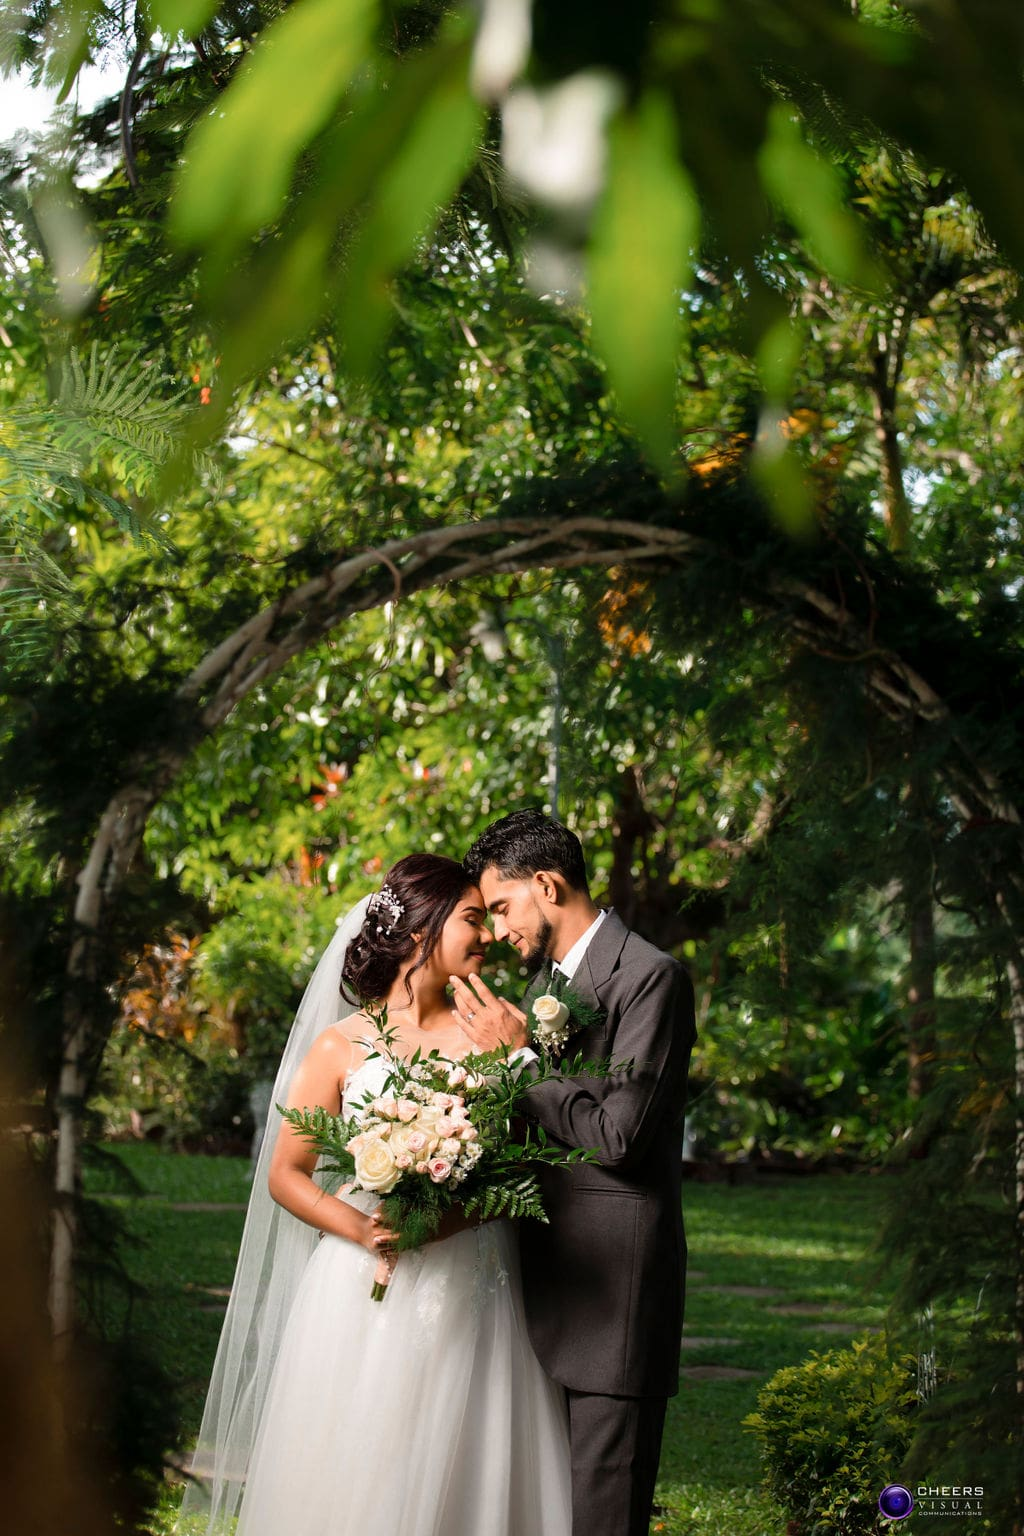 Rianne & Heera's Sweet Outdoor Wedding In Trinidad & Tobago, Photography by Cheers Visual Communications for Destination Wedding Blog Adriana Weddings